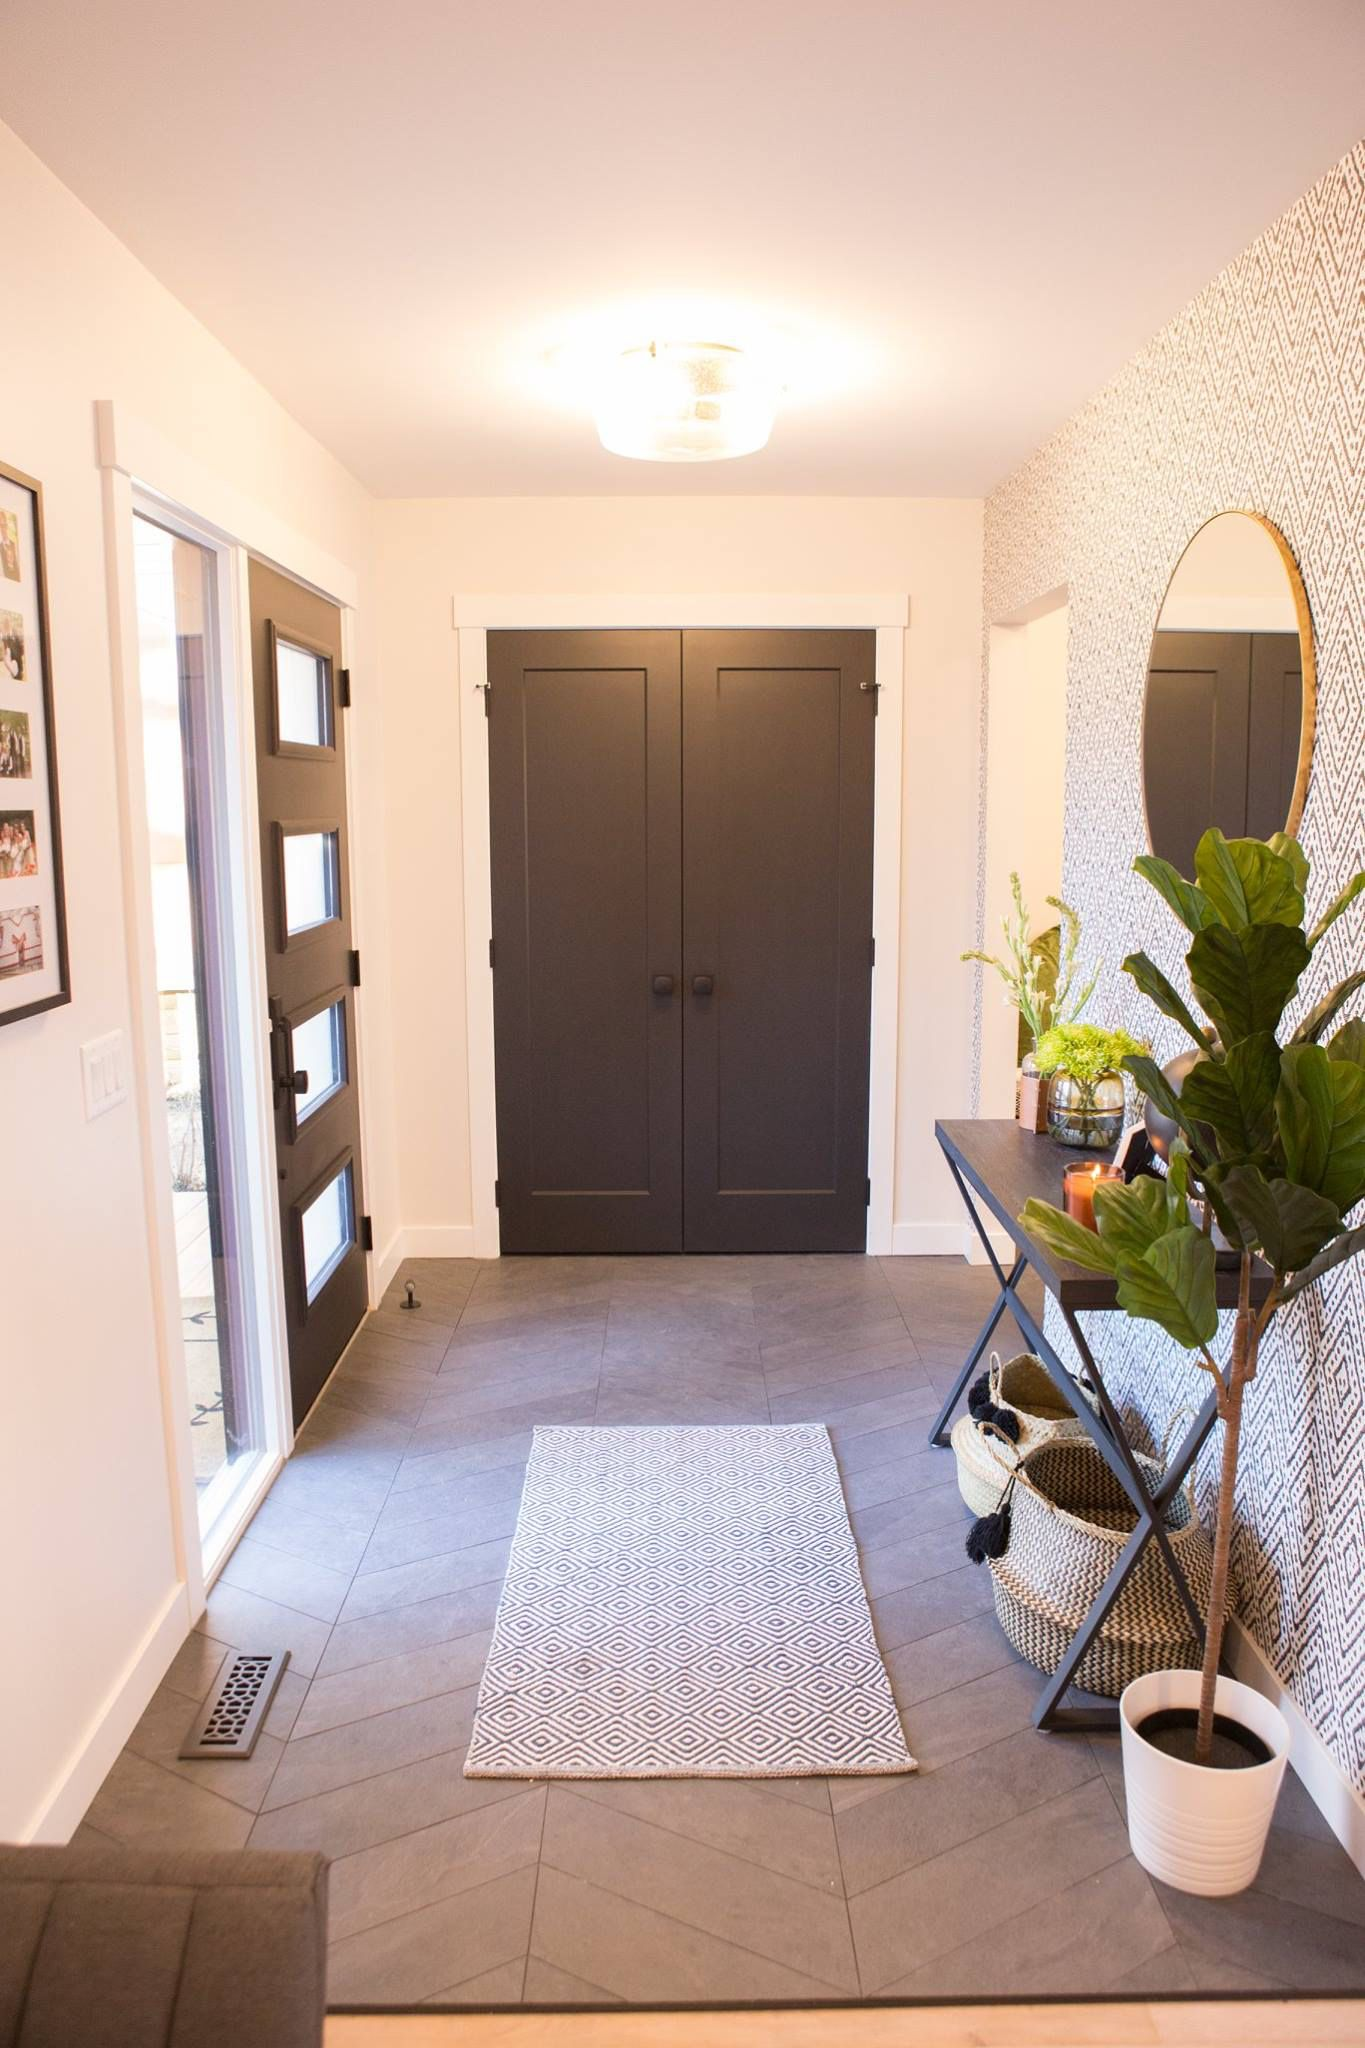 Oversized entry way with modern Herringbone tile and light